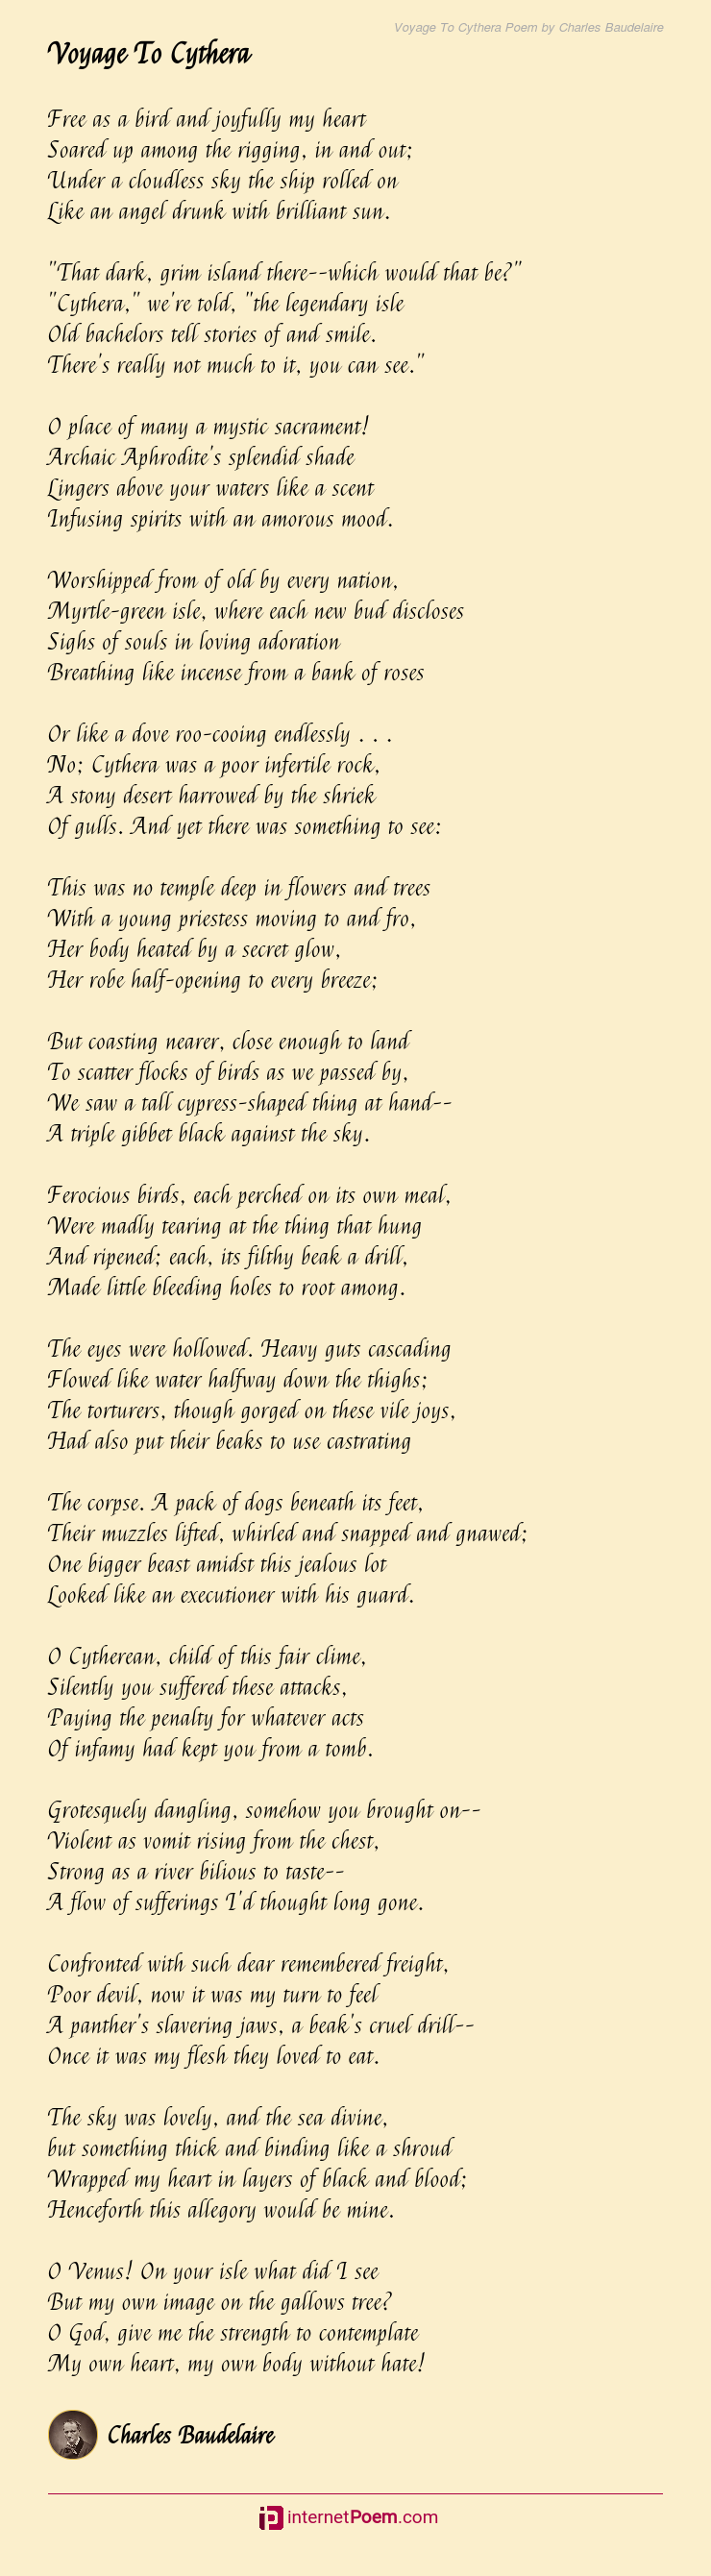 Voyage To Cythera Poem By Charles Baudelaire